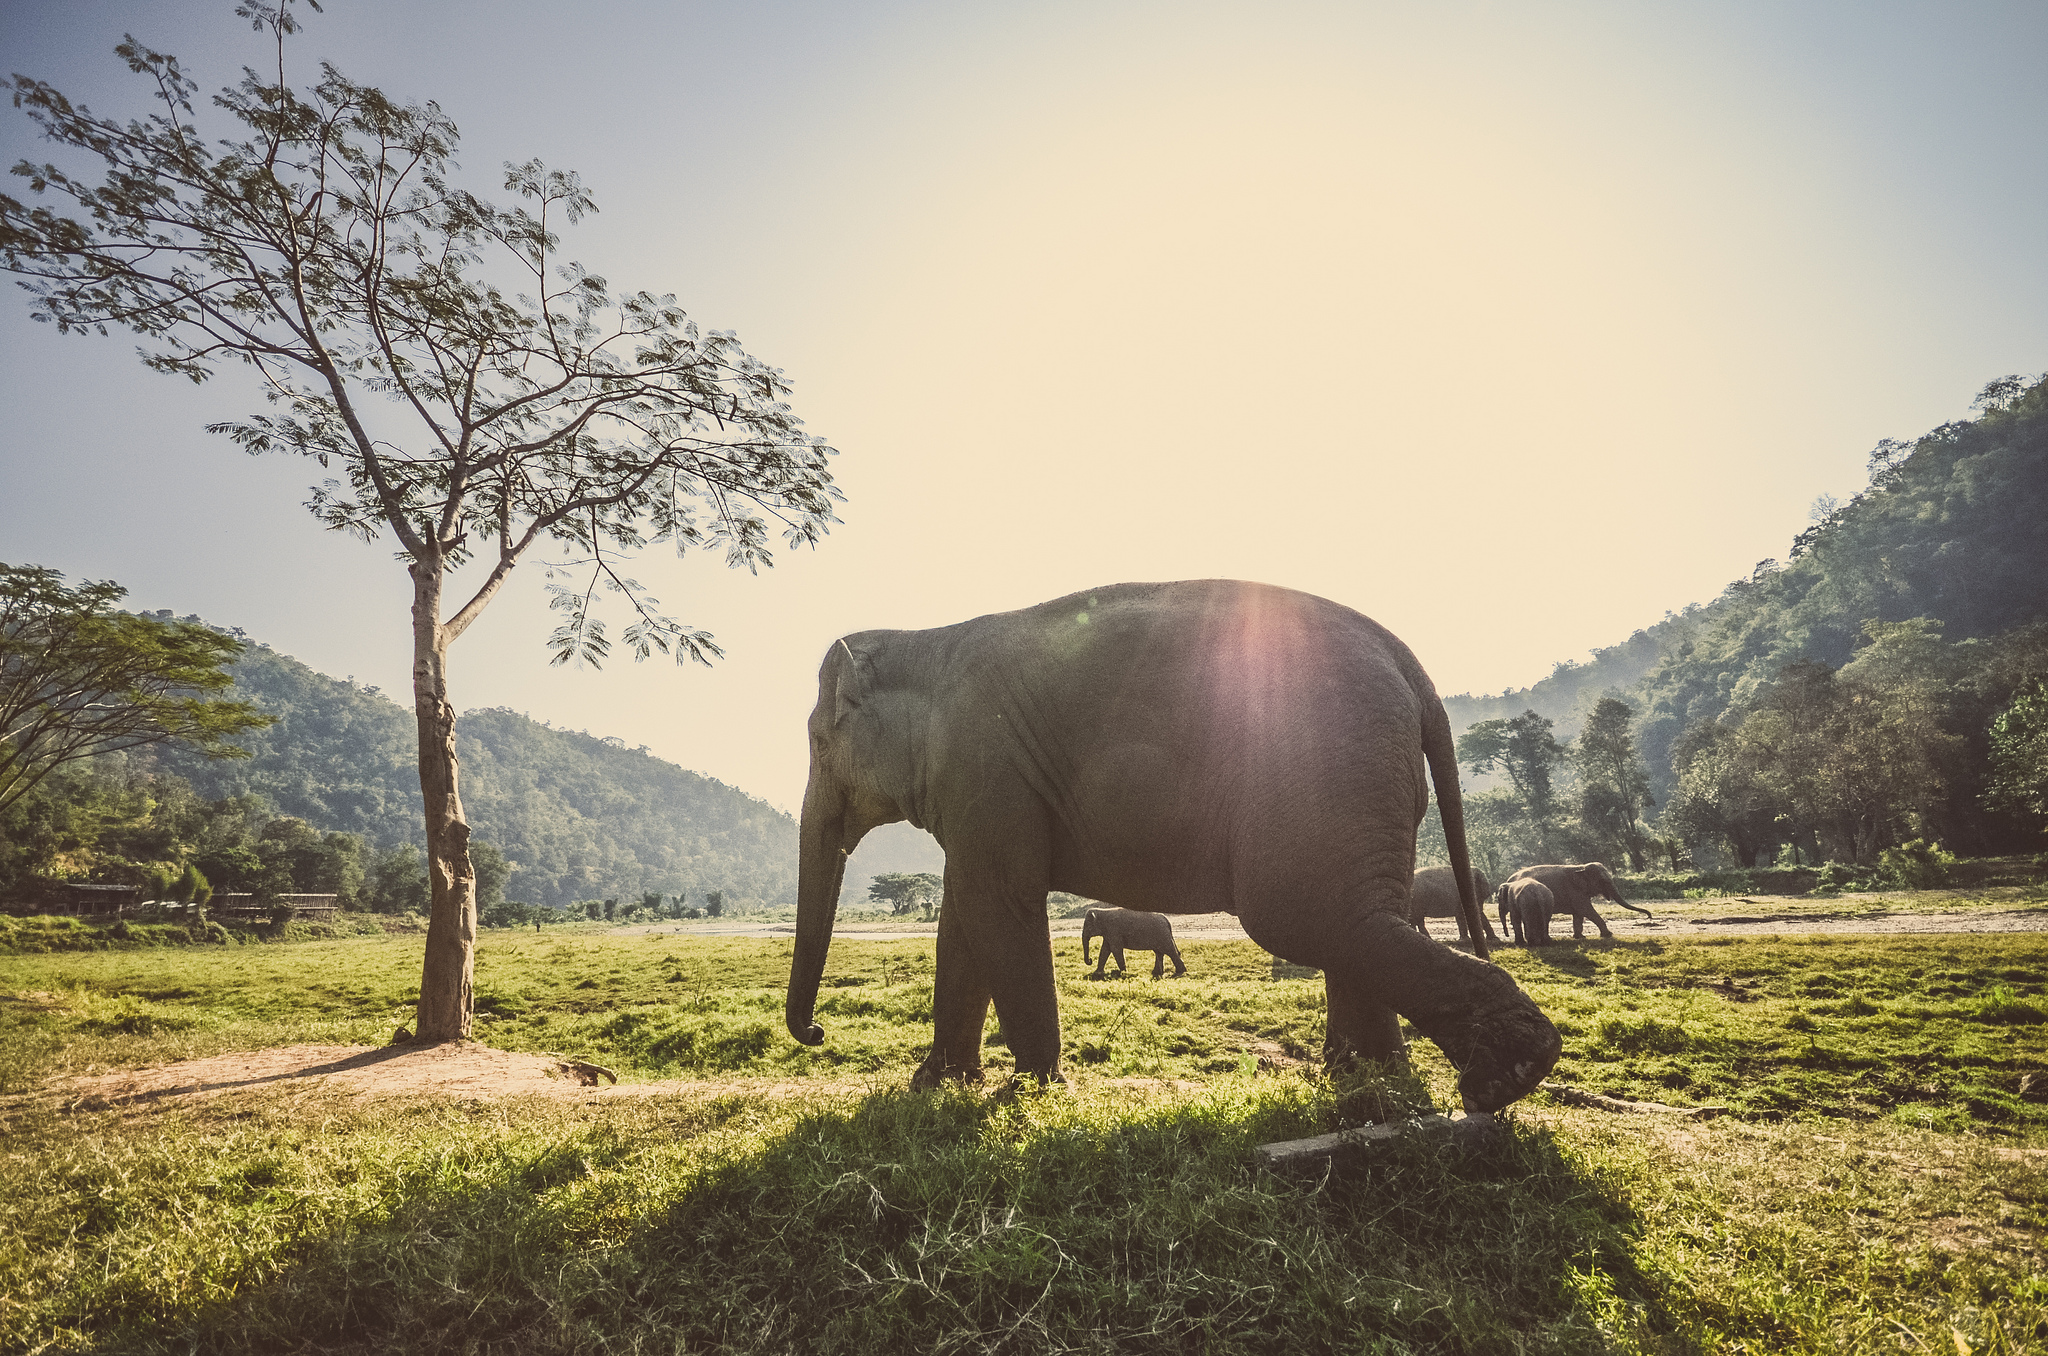 Elephants make for amazing travel pictures ... photo by CC user eddymilfort on flickr